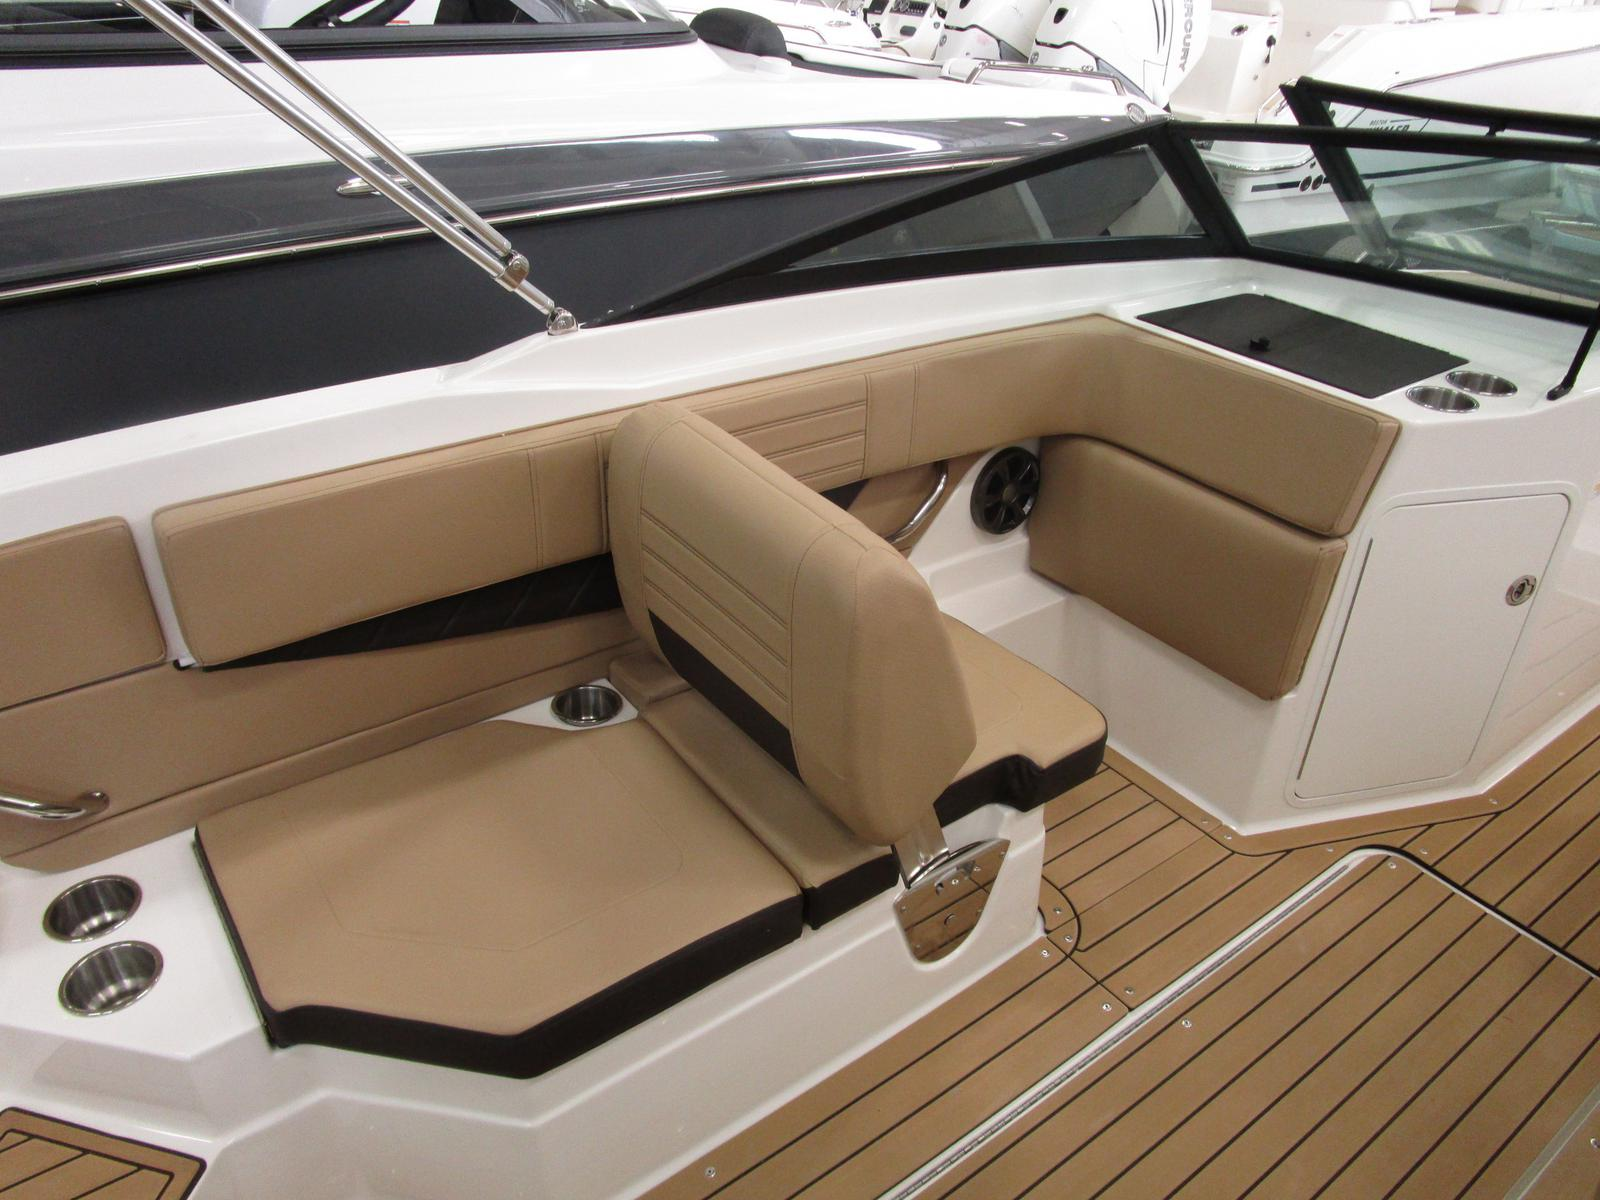 2019 Sea Ray boat for sale, model of the boat is SPX 210 & Image # 4 of 7